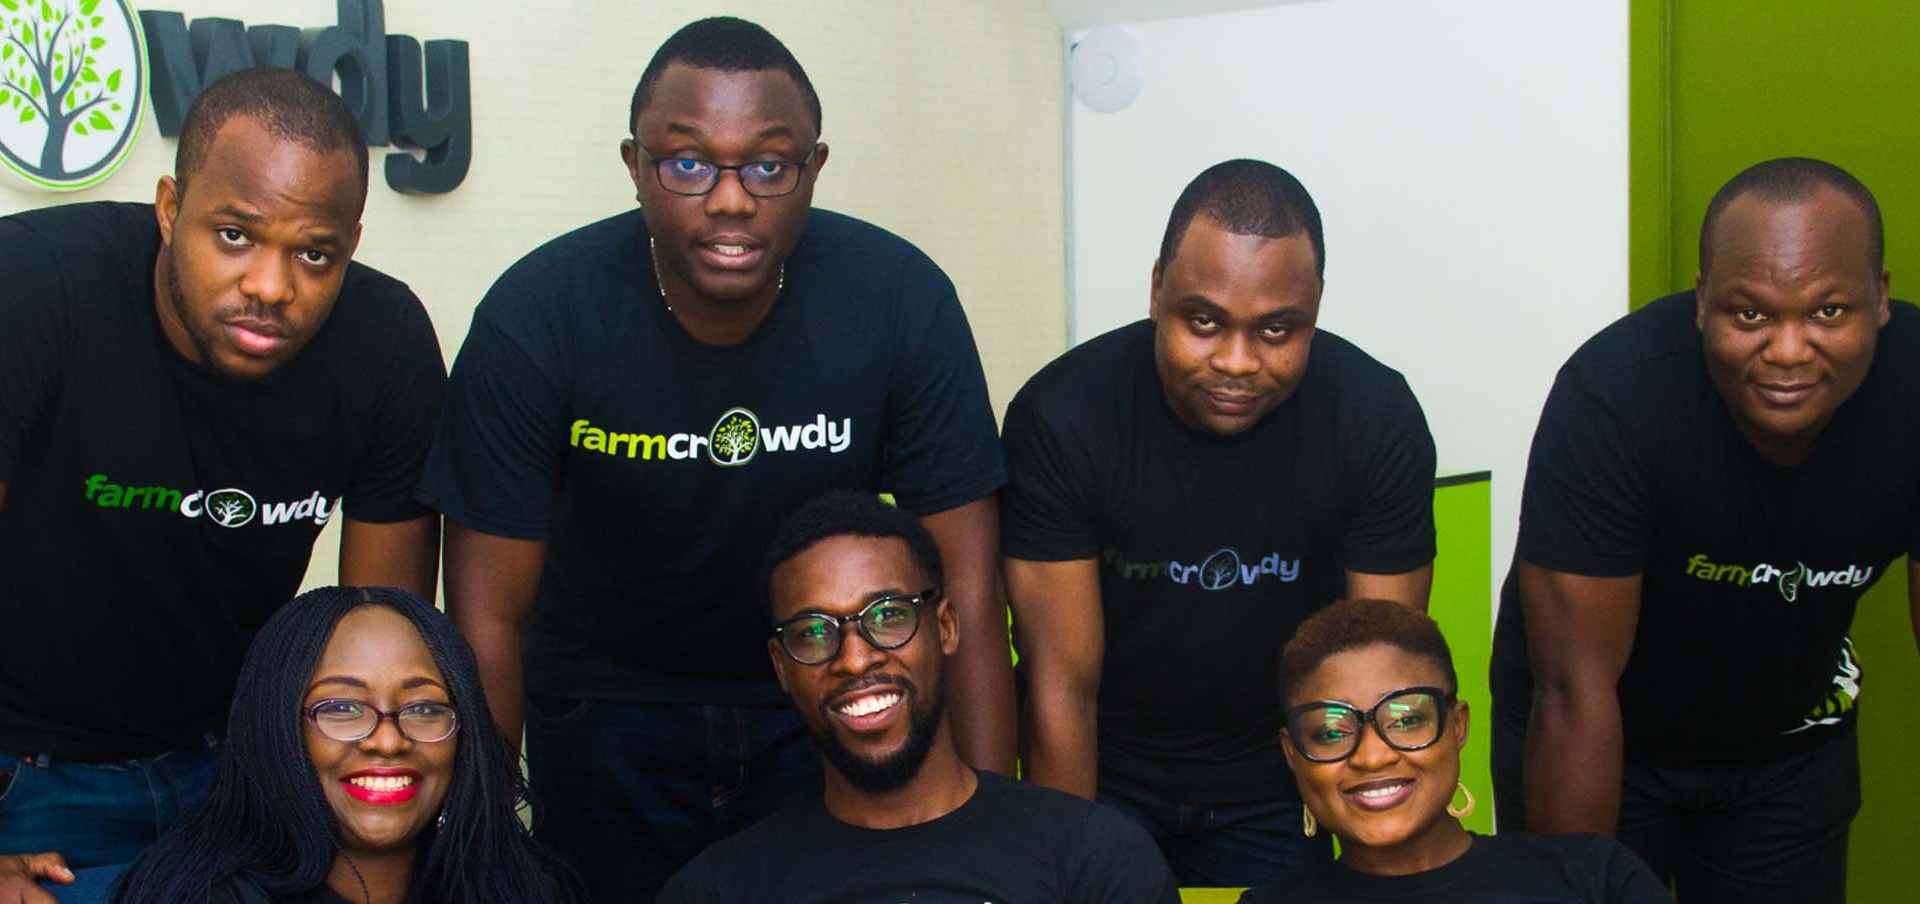 FarmCrowdy Secures Another $1 Million Seed Investment, Upping its Total Seed Funding to $2 Million